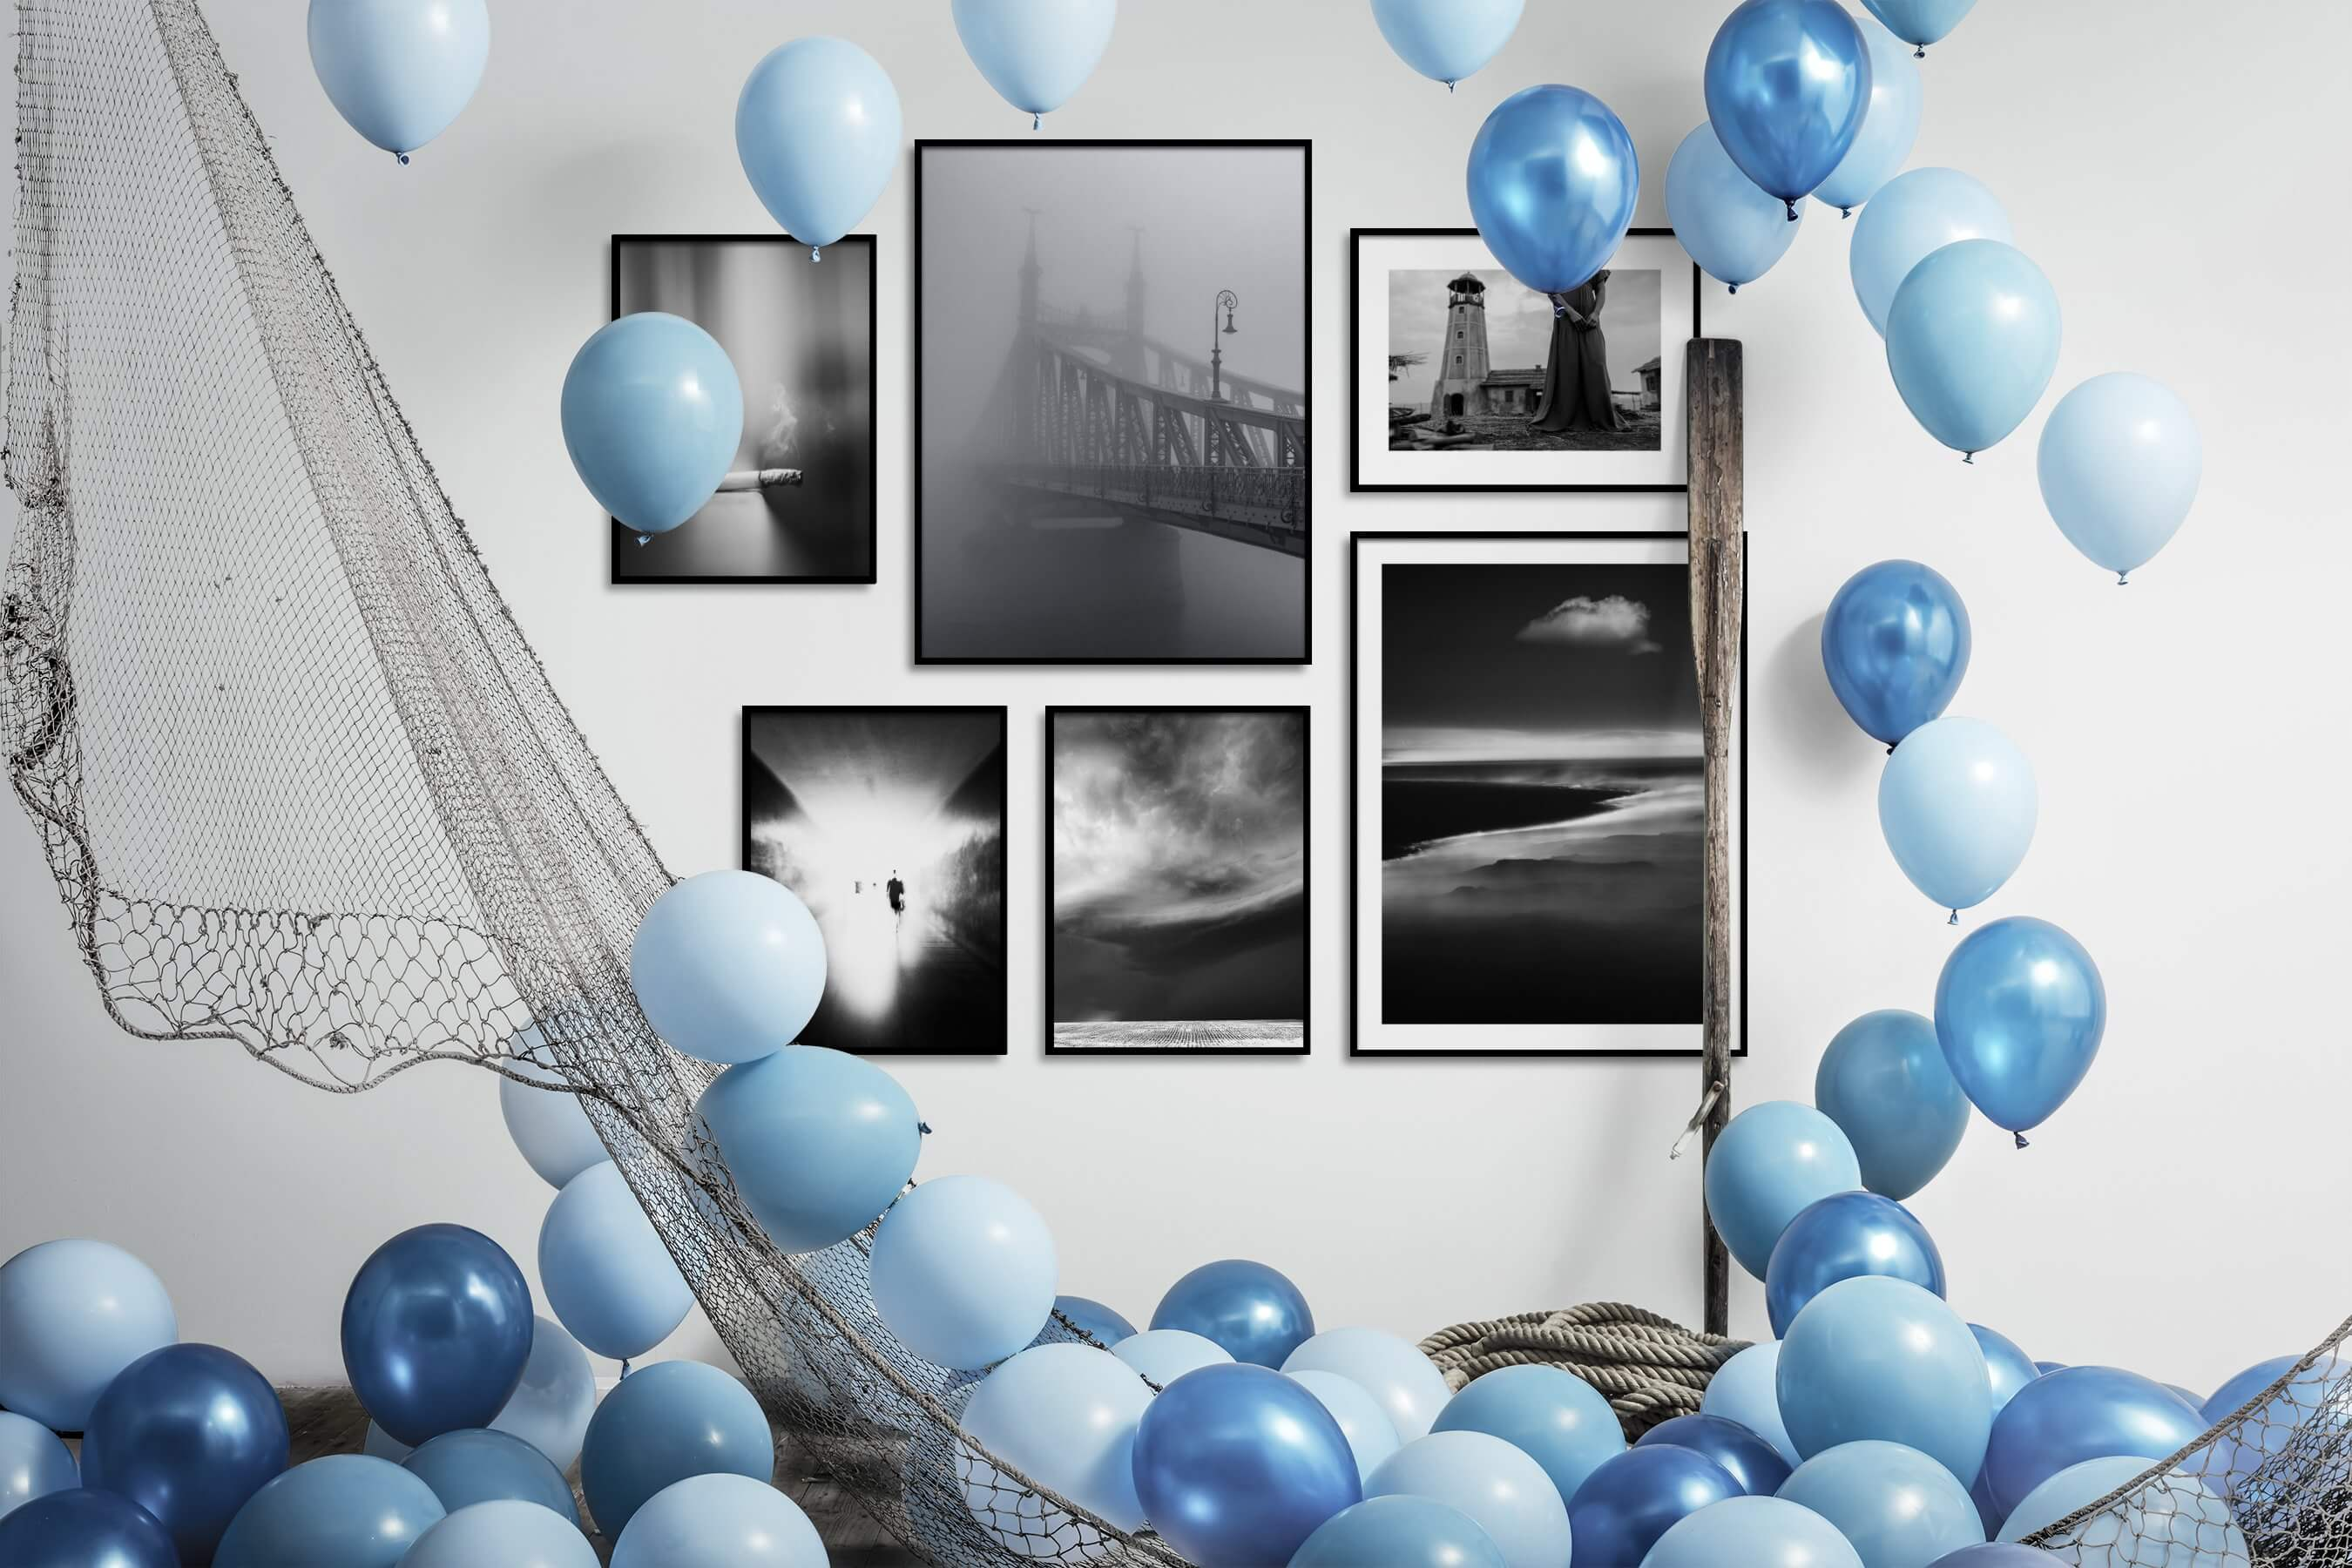 Gallery wall idea with six framed pictures arranged on a wall depicting Black & White, For the Moderate, City Life, Country Life, Artsy, Vintage, and Nature